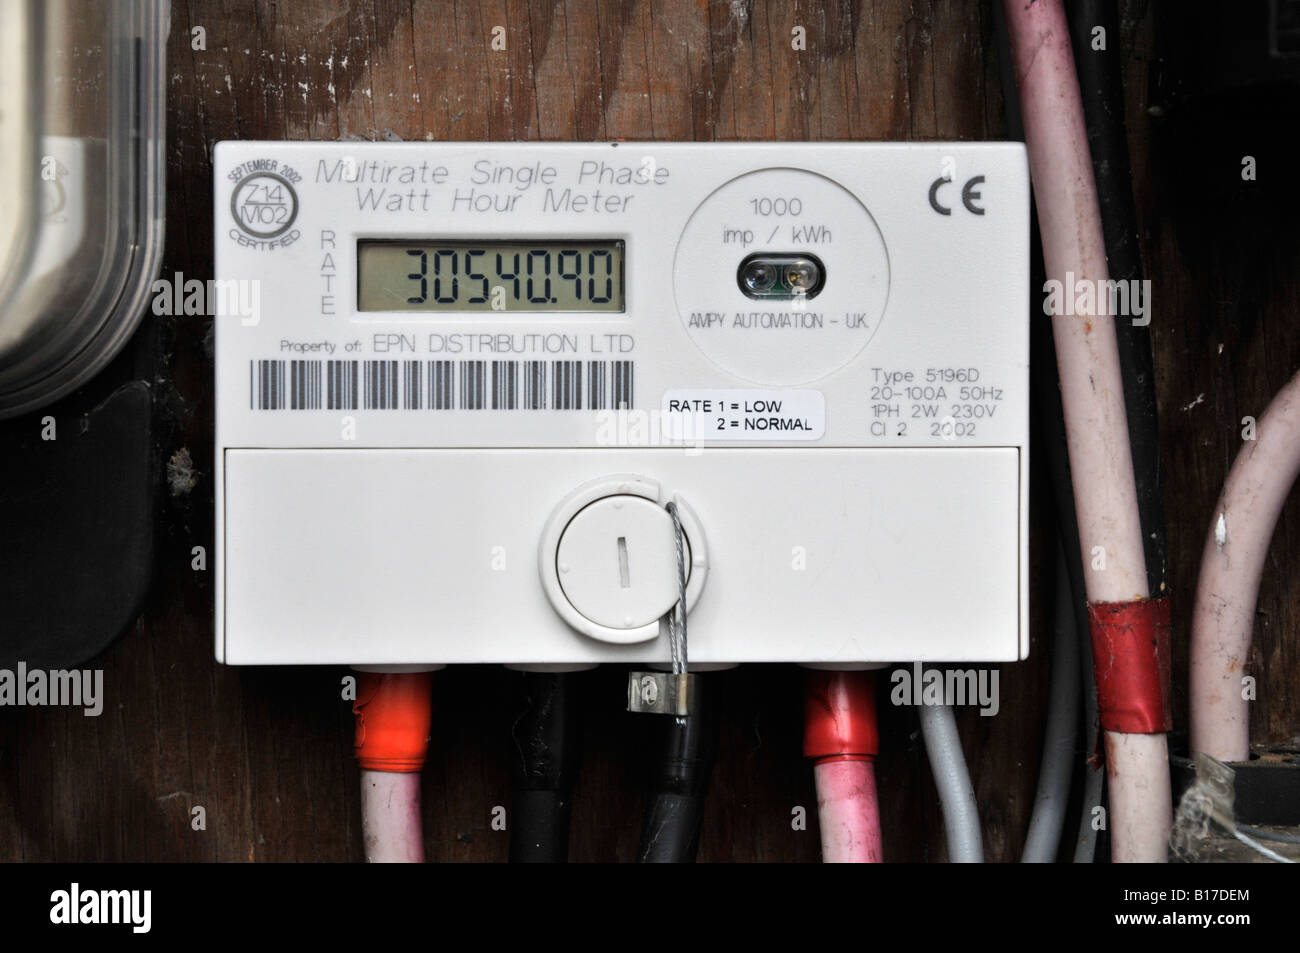 Economy 7 Fuse Box 18 Wiring Diagram Images Diagrams Consumer Units Milton Keynes Electrician Mjs Electricalmilton Domestic Electricity Meter Capable Of Recording Dual Rate B17dem Cupboard Stock Photos